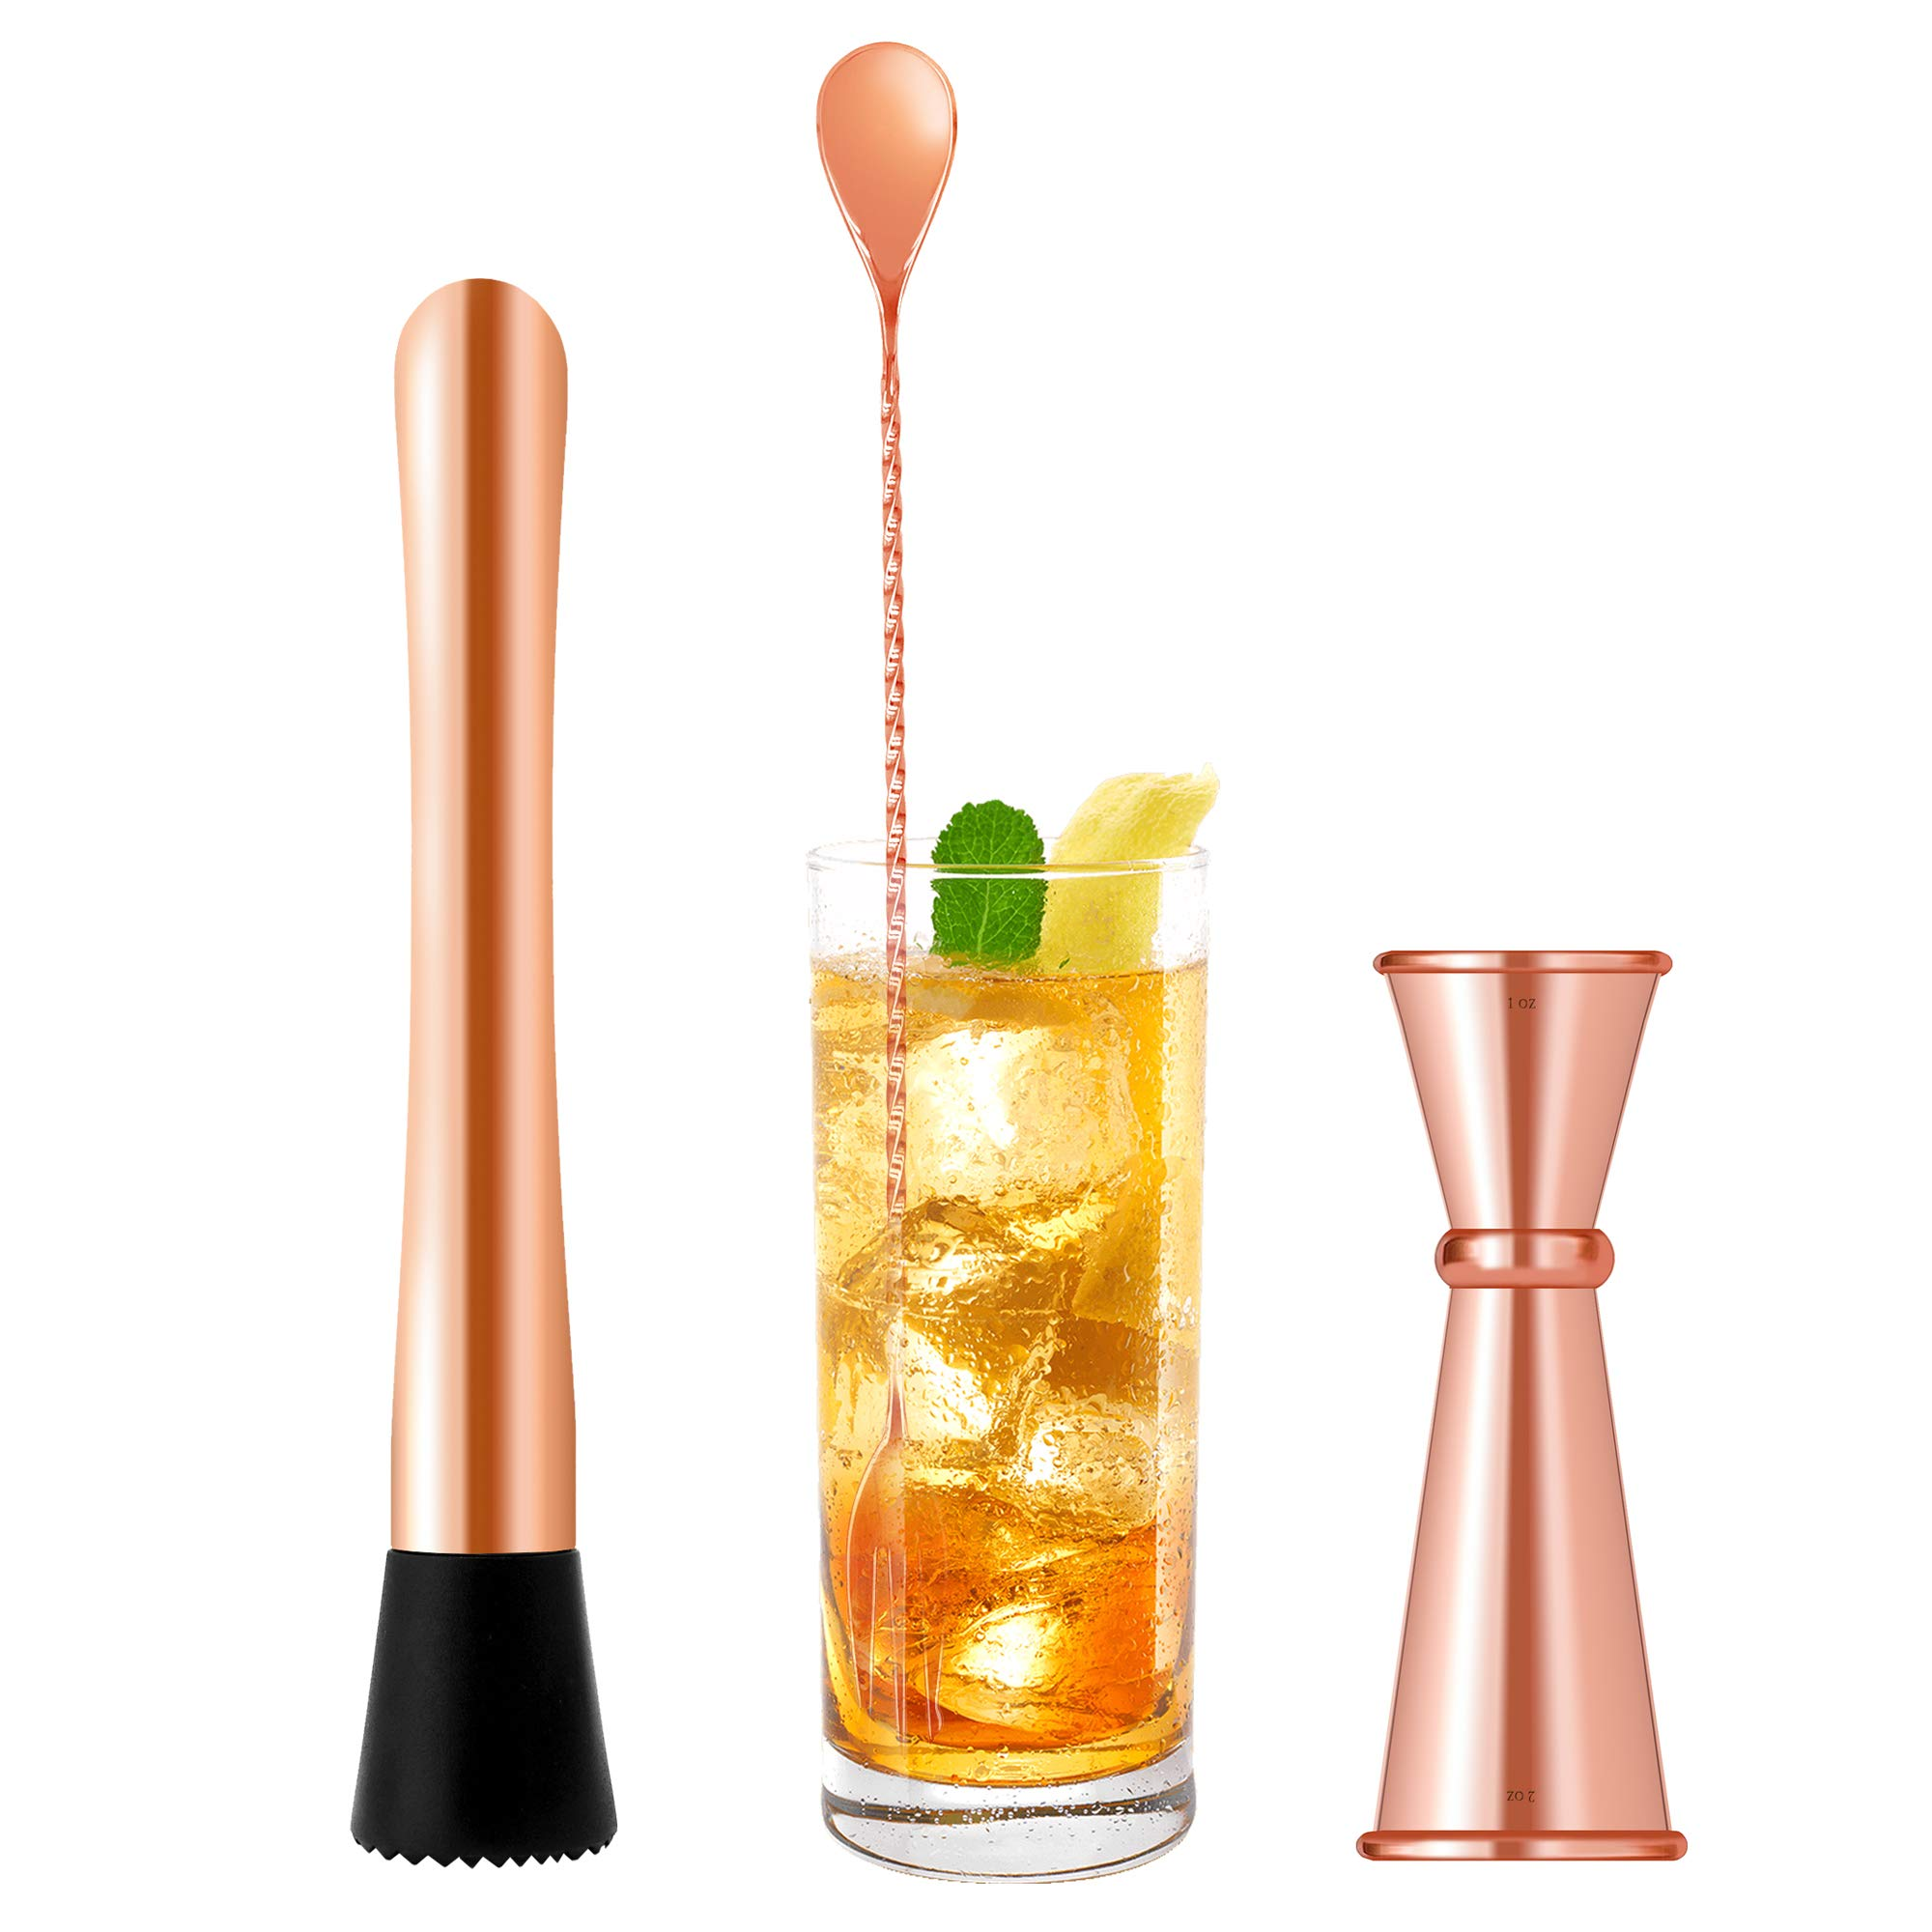 Homestia 3 PIECE Muddler Set Stainless Steel Cocktail Muddler with Double Jigger, Bar Spoon Mojito Bar Tool Copper by Homestia (Image #1)